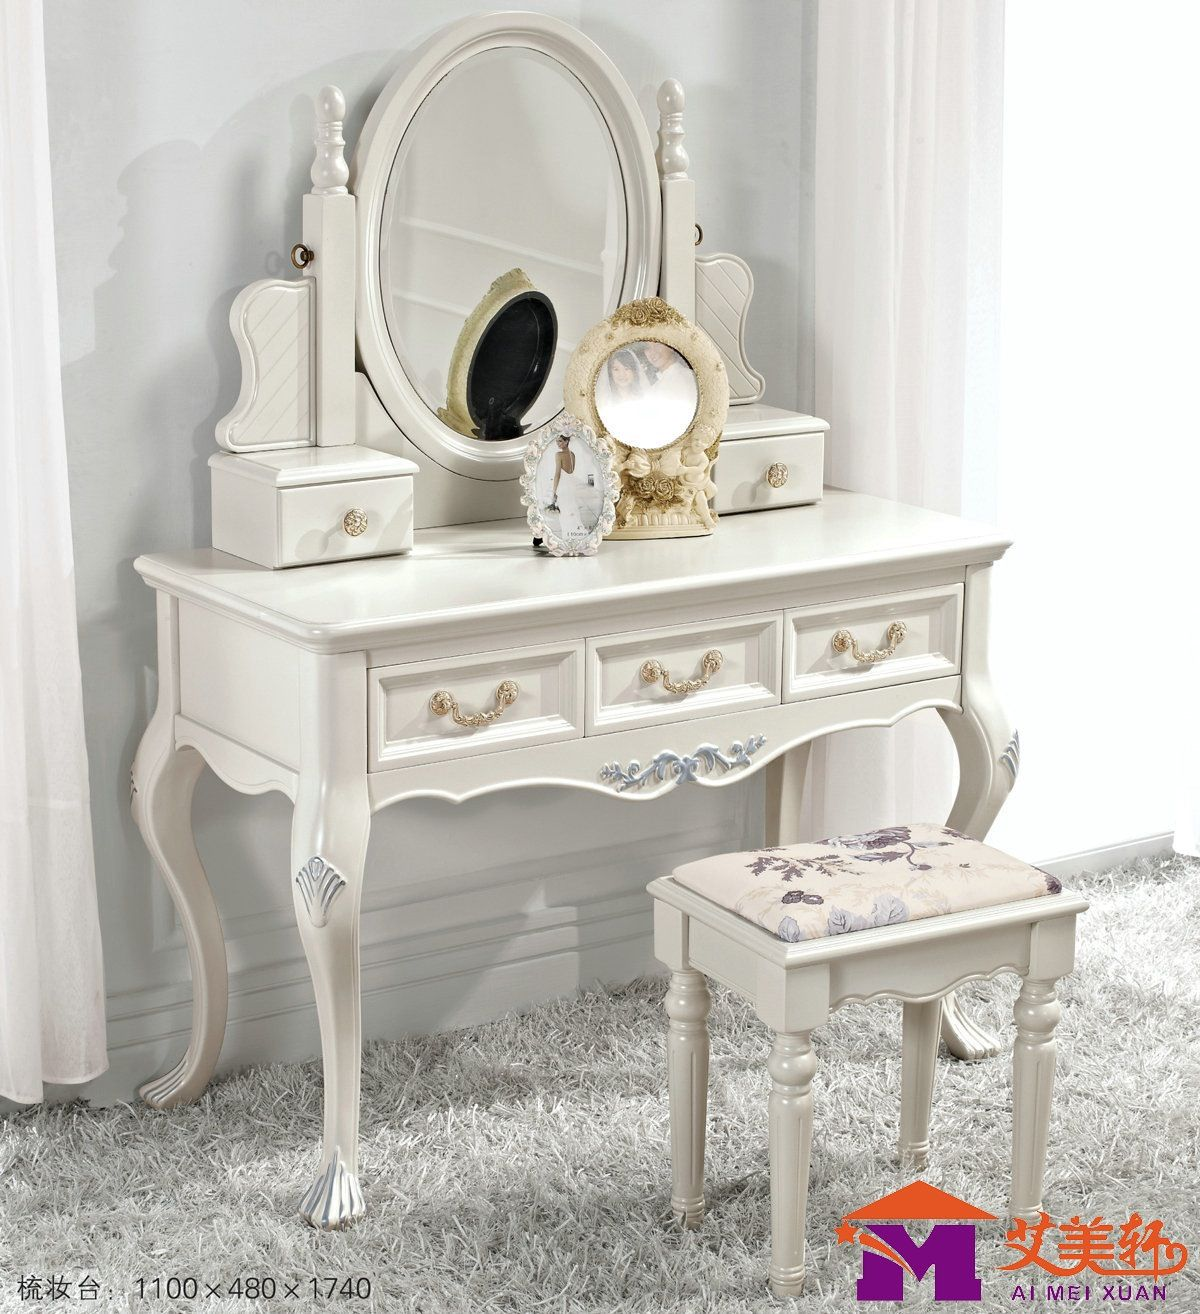 White Vanity Table And Chair Dressing Table Classical In White With Laurel And Shell